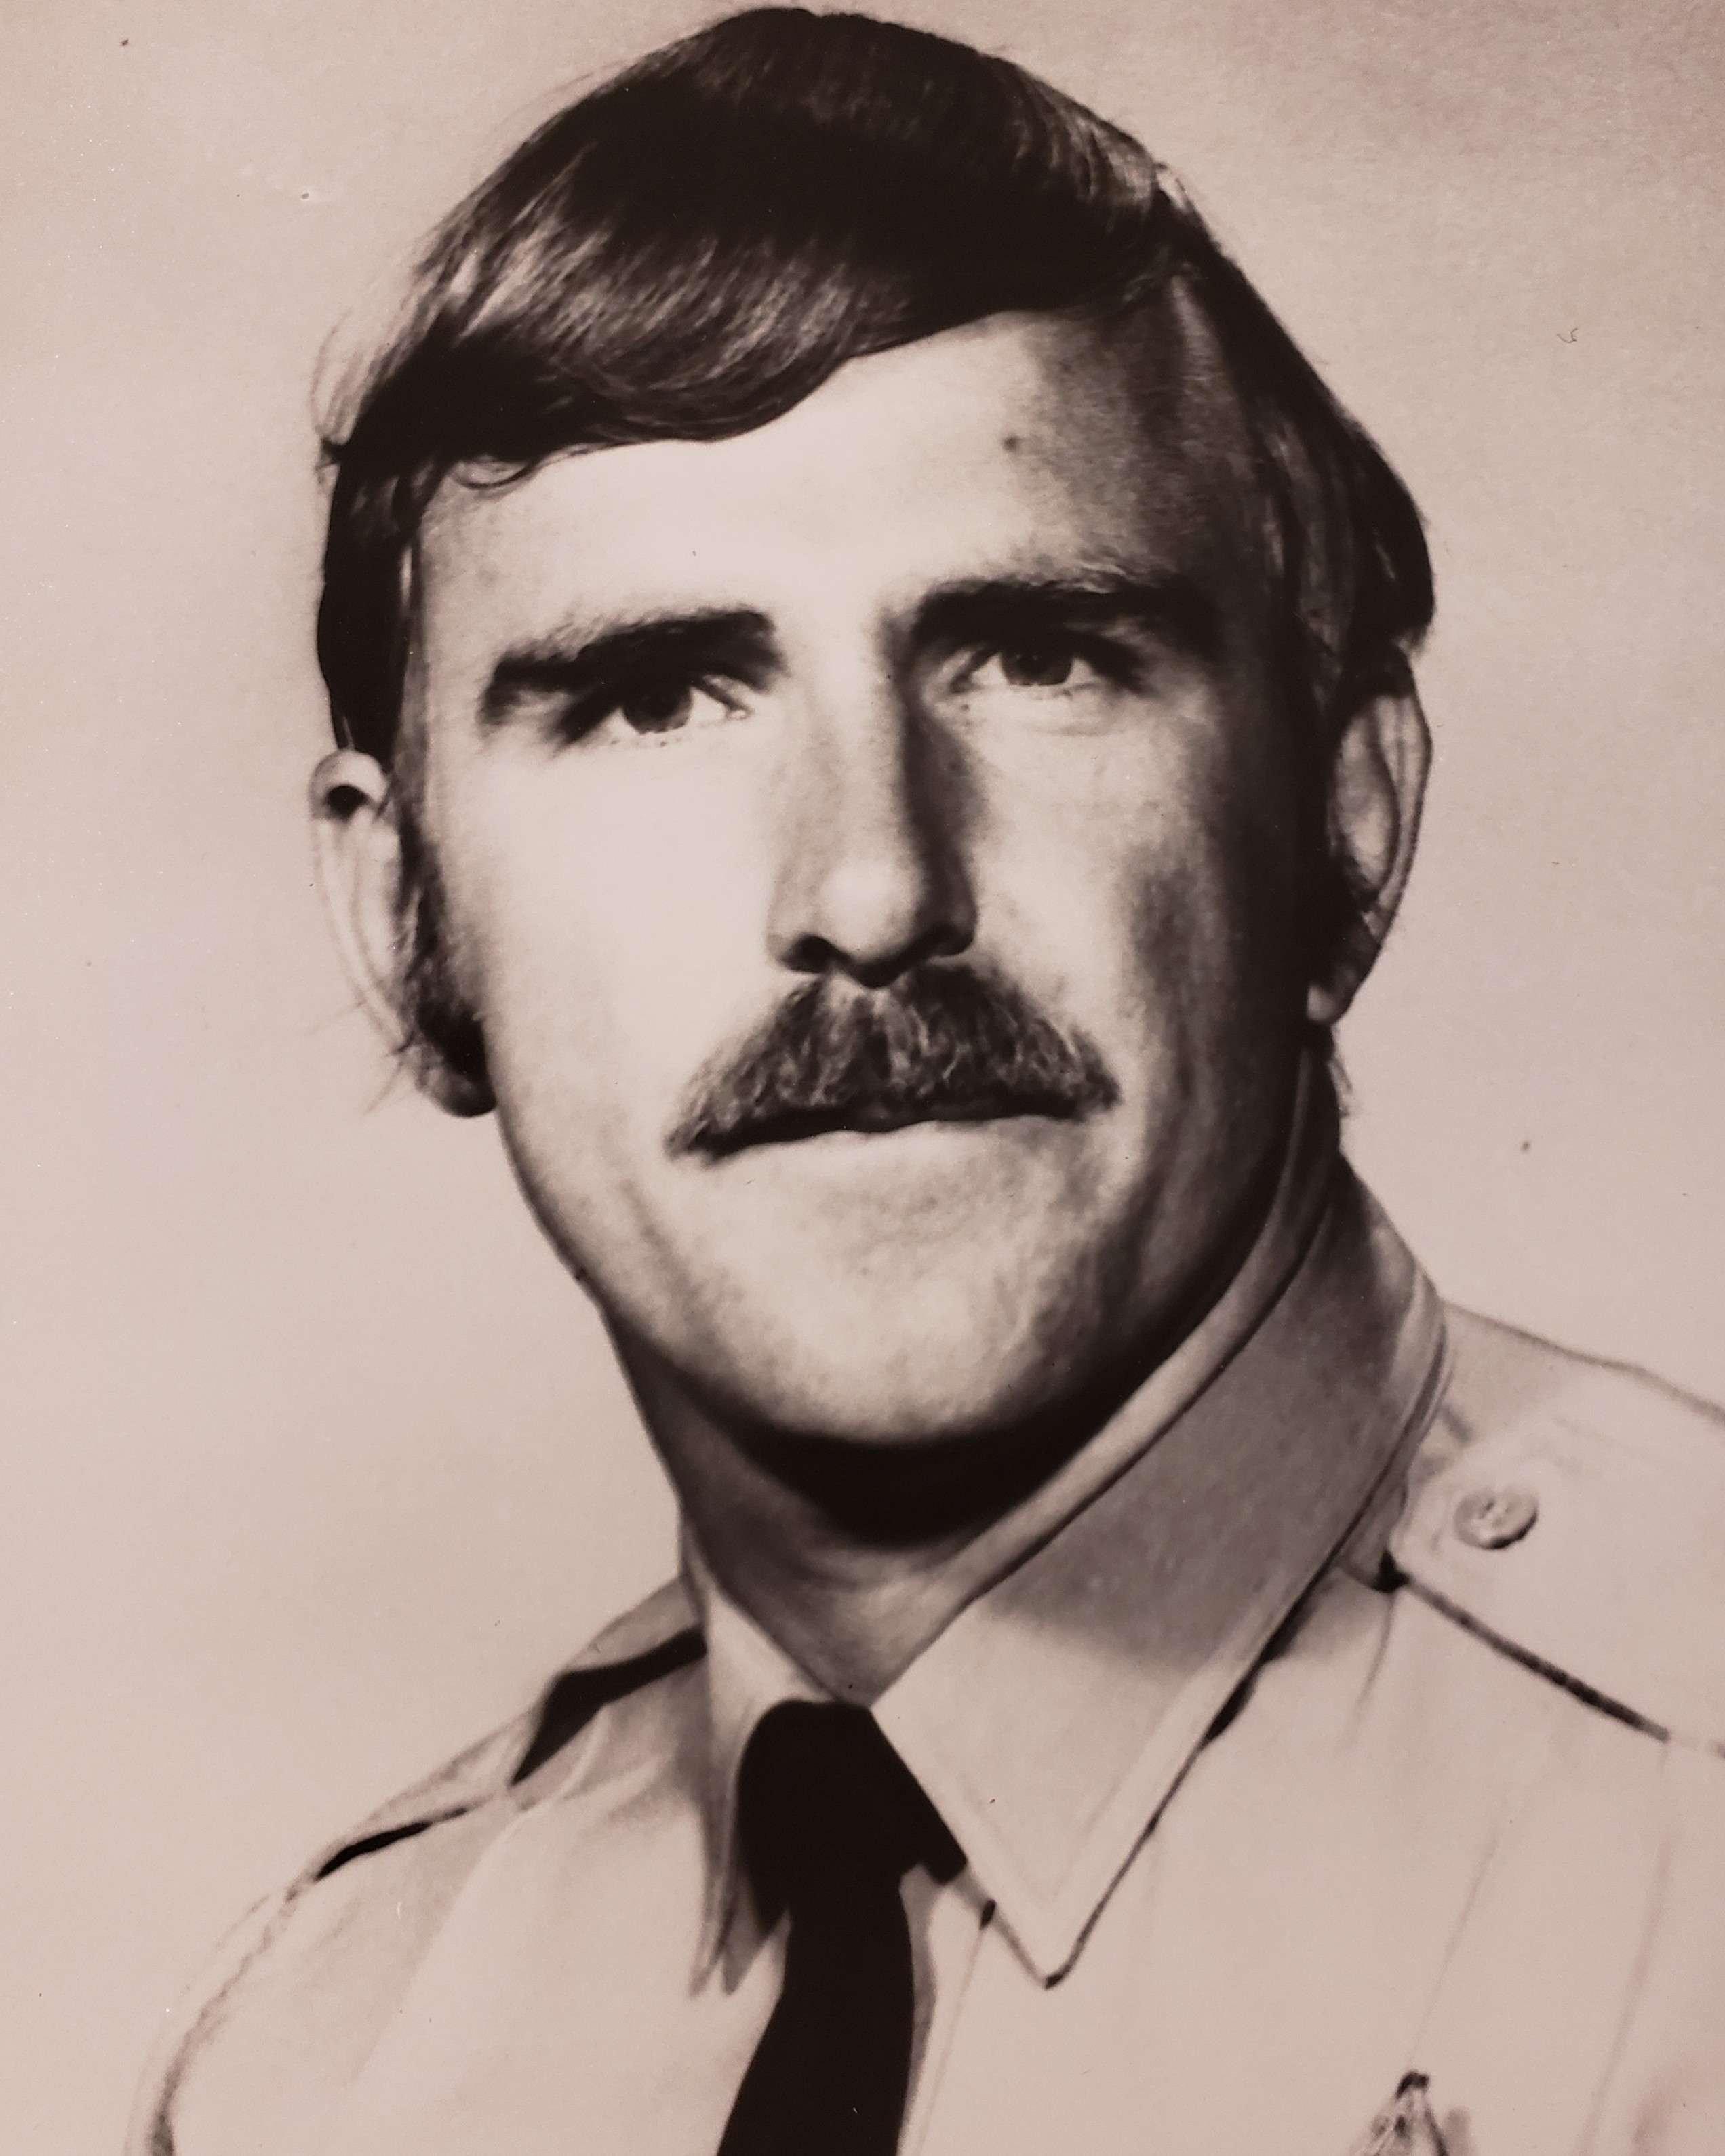 Deputy Sheriff George R. Barthel | Los Angeles County Sheriff's Department, California